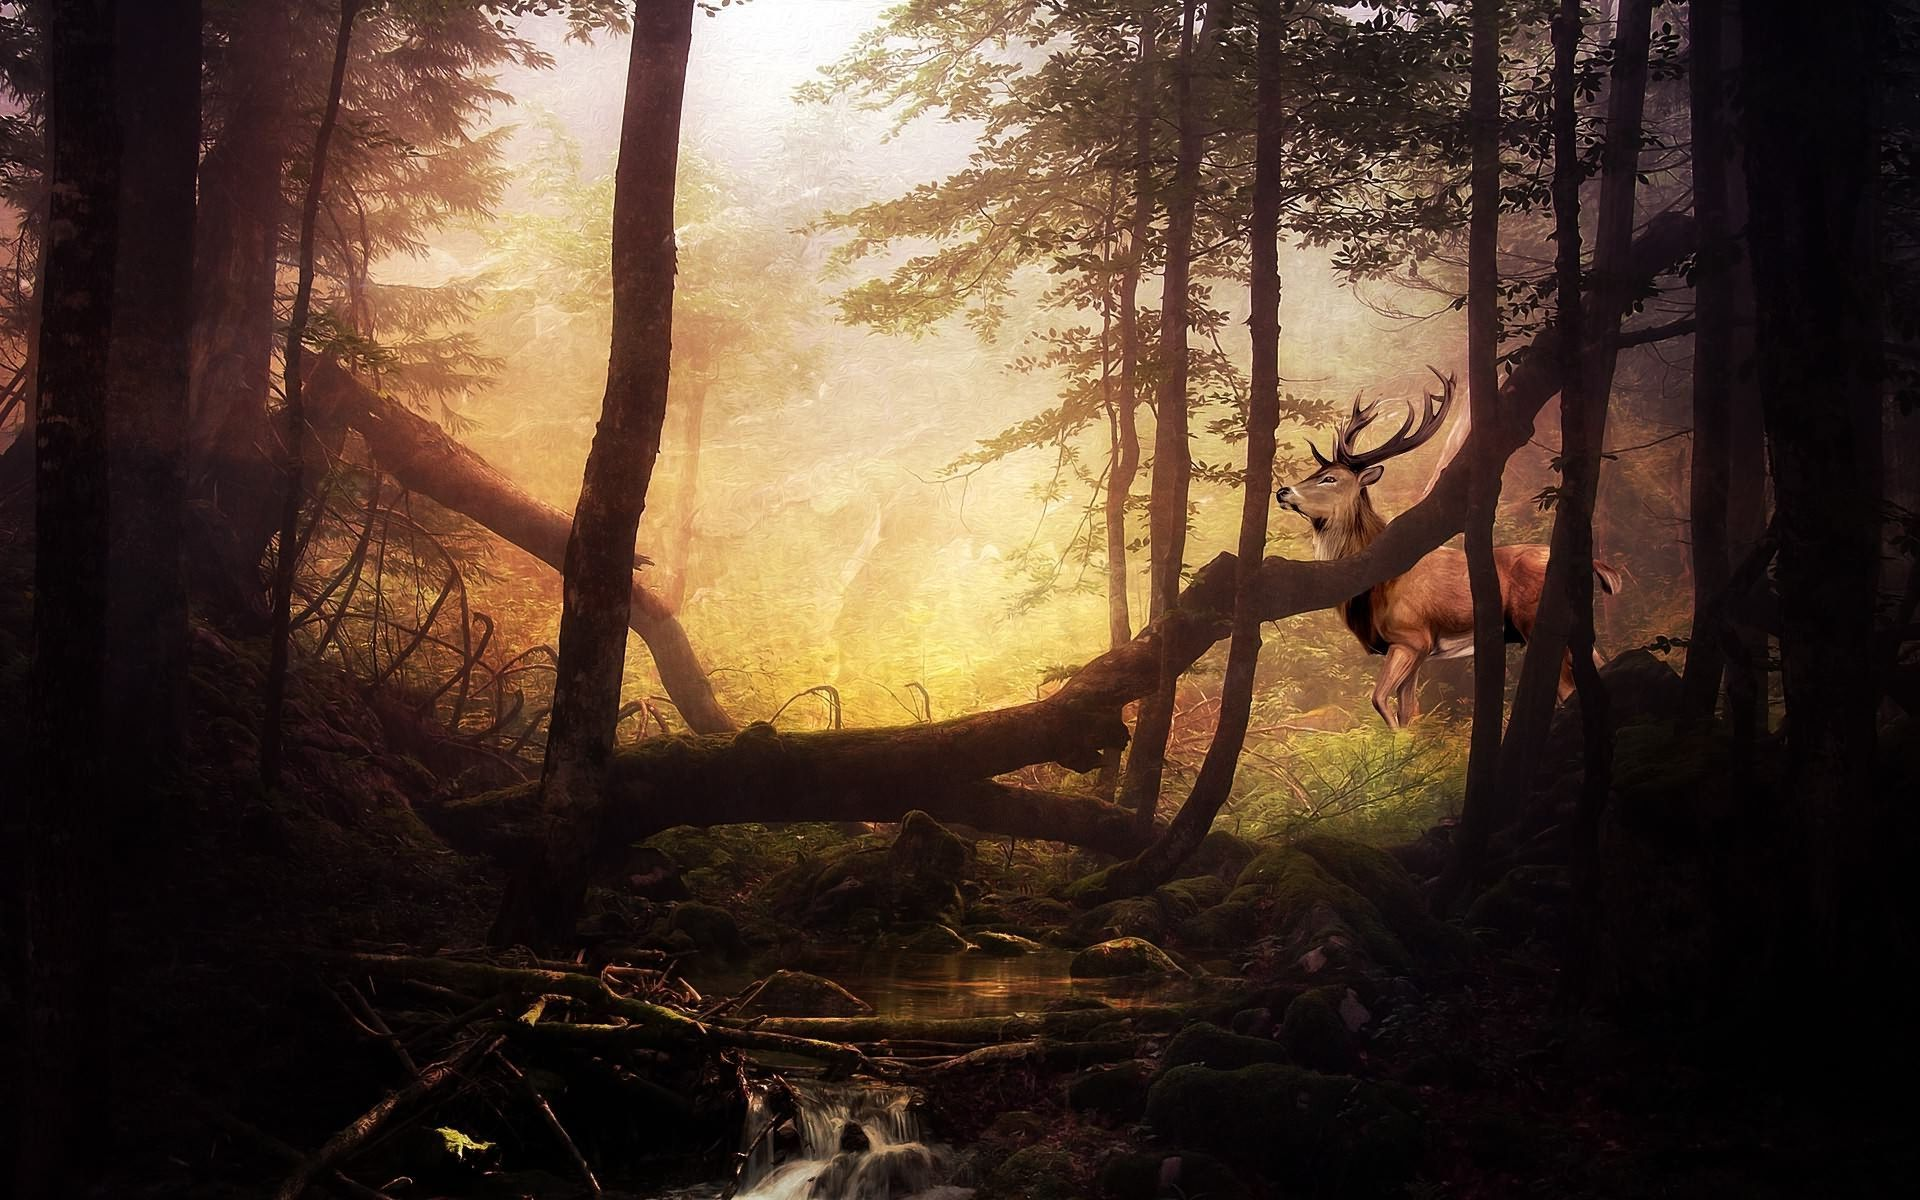 Deer in the forest wallpaper 1045